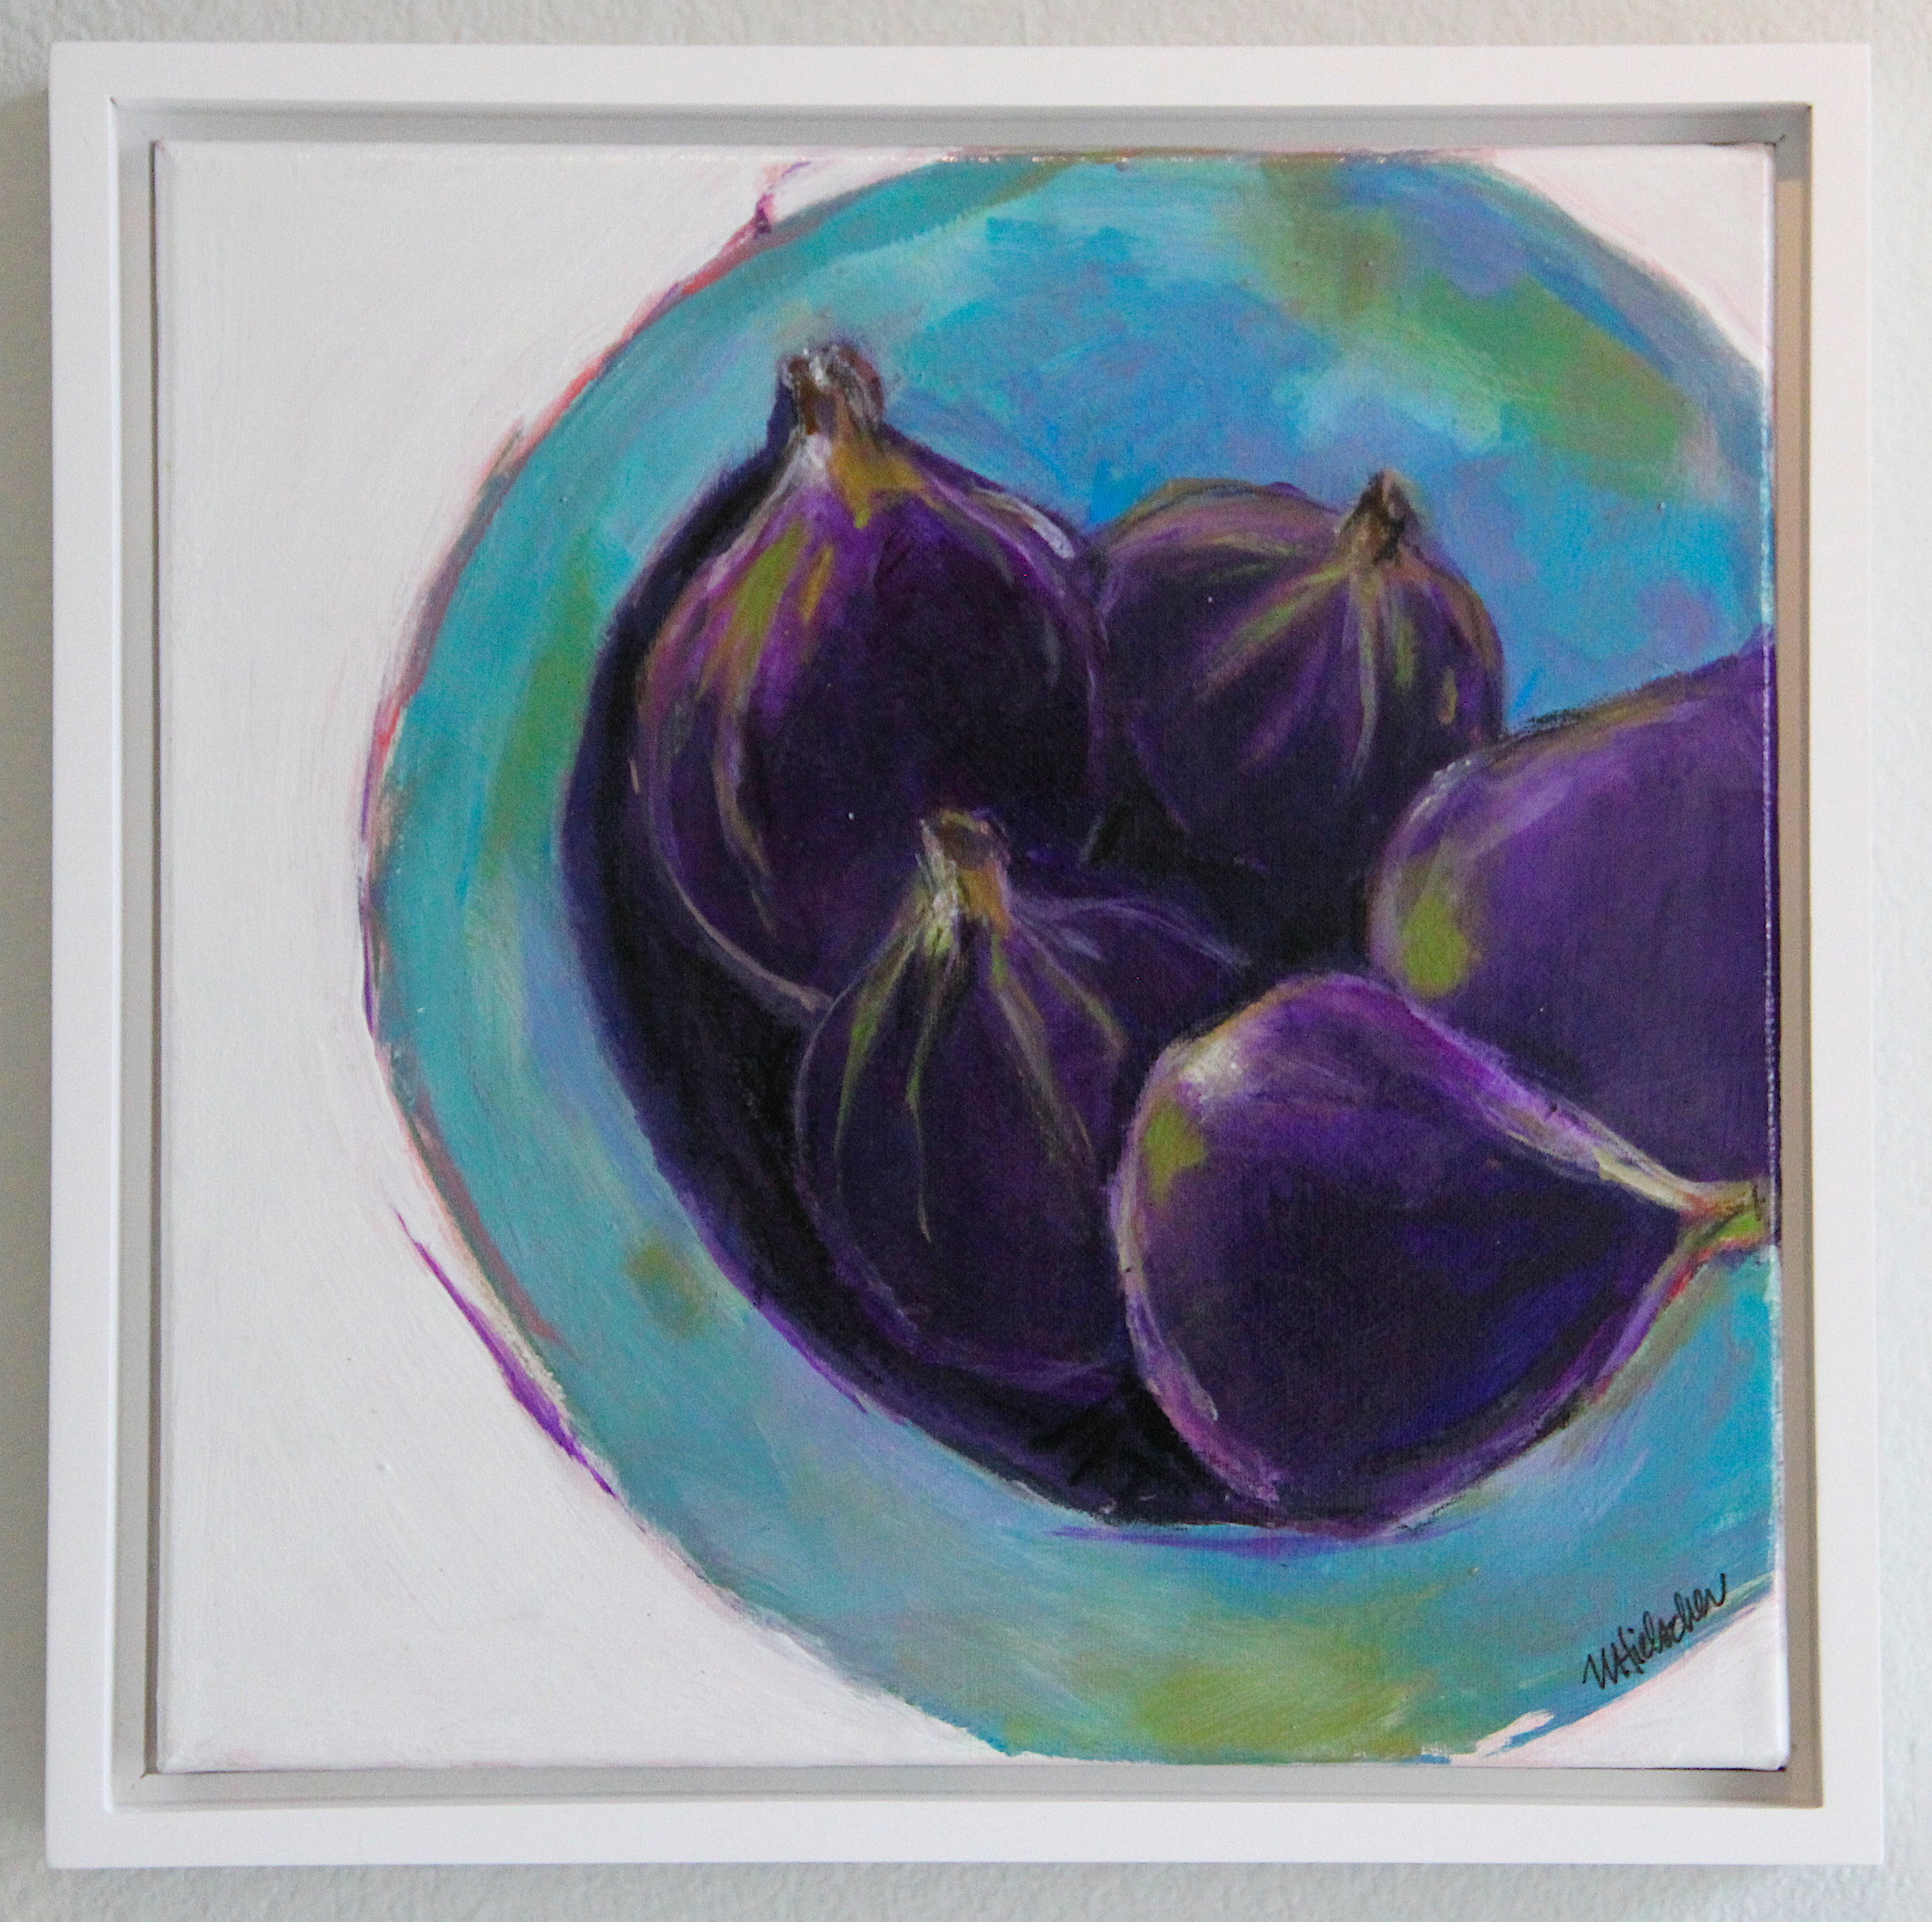 NANCY HIELSCHER, FIGS IN BLUE BOWL